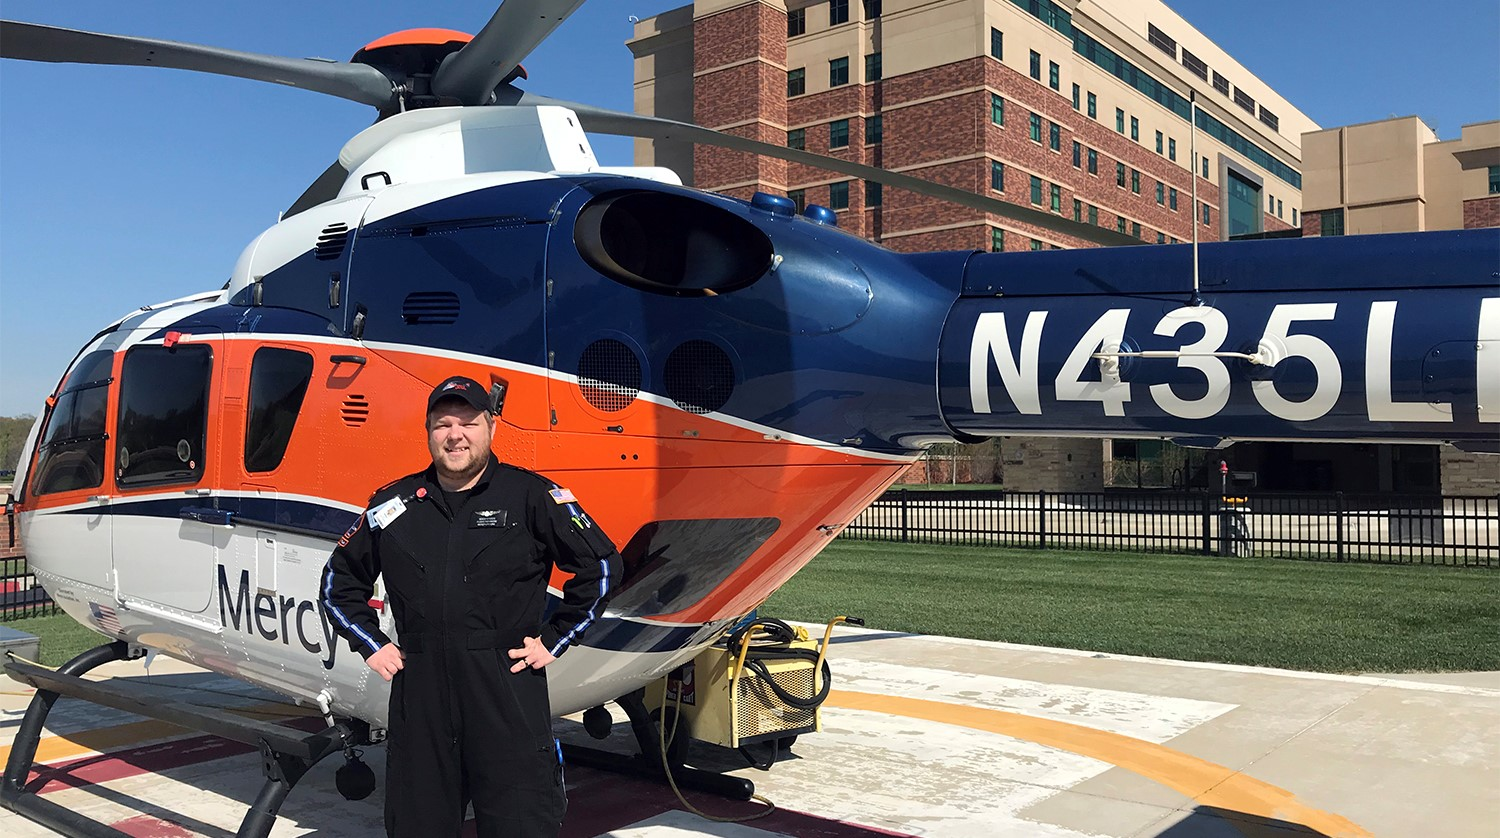 Otc Student Takes To The Skies As A Flight Paramedic